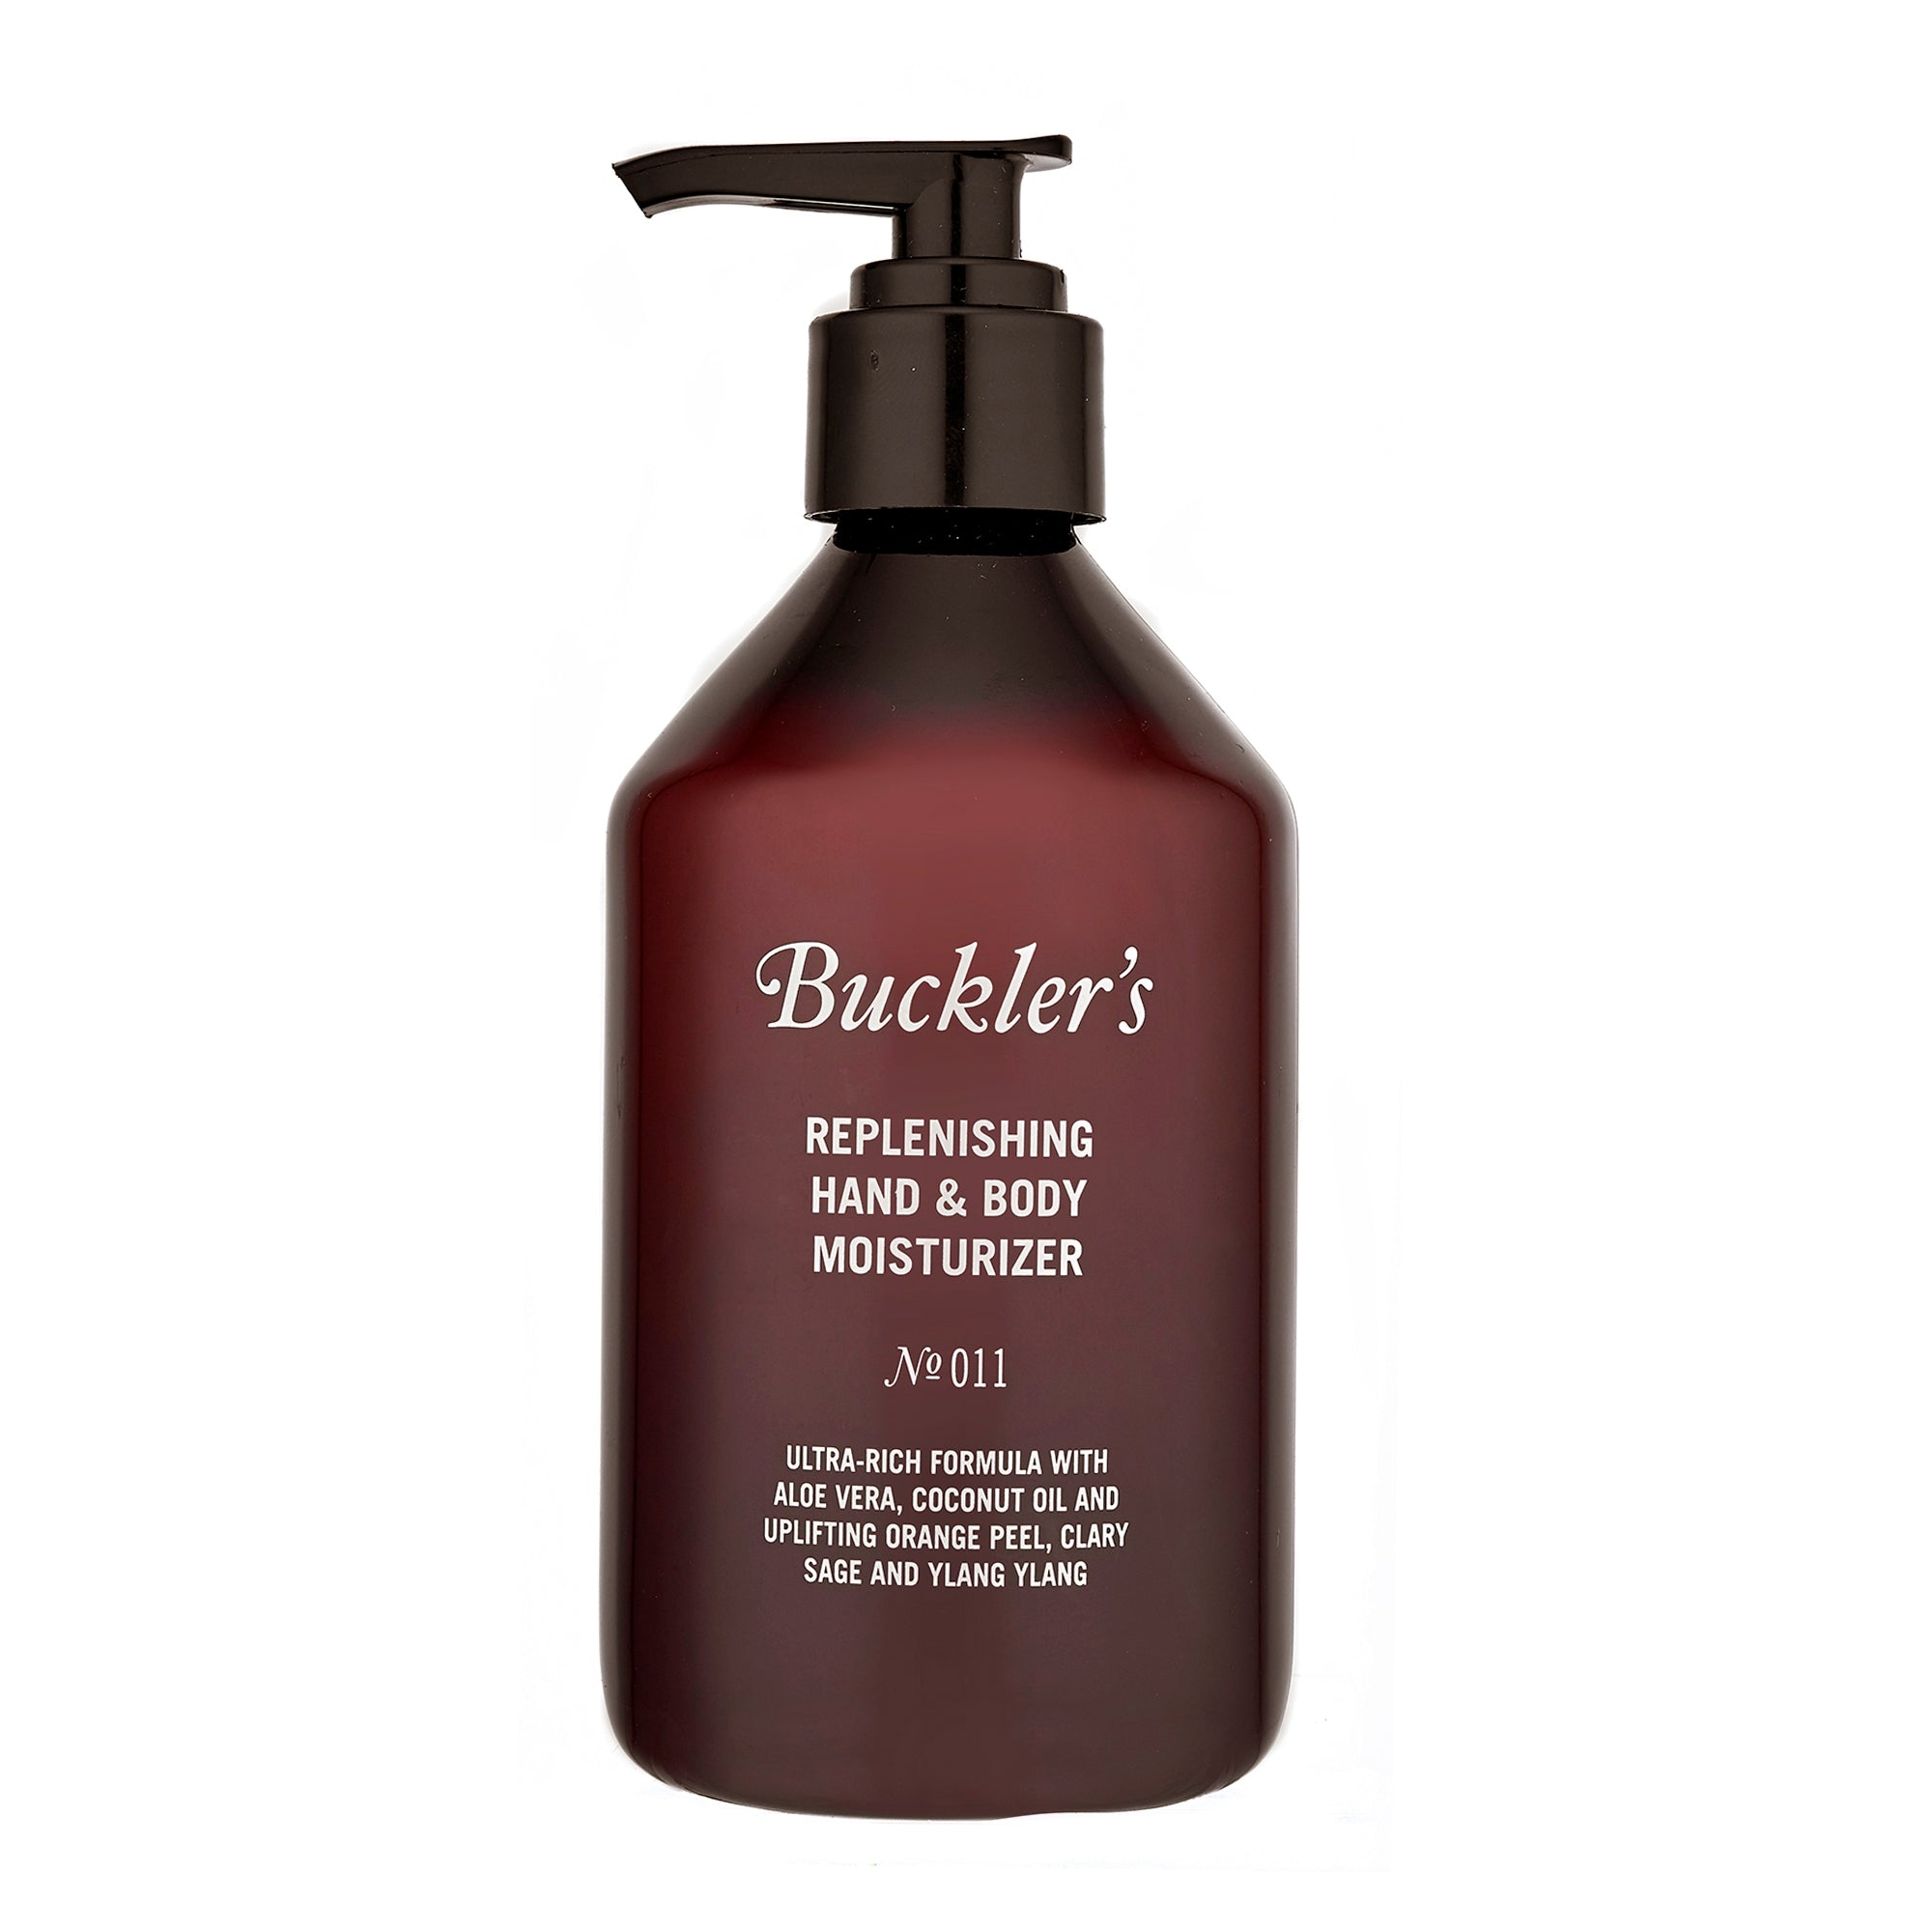 Buckler's Replenishing Hand & Body Moisturizer - The Motley